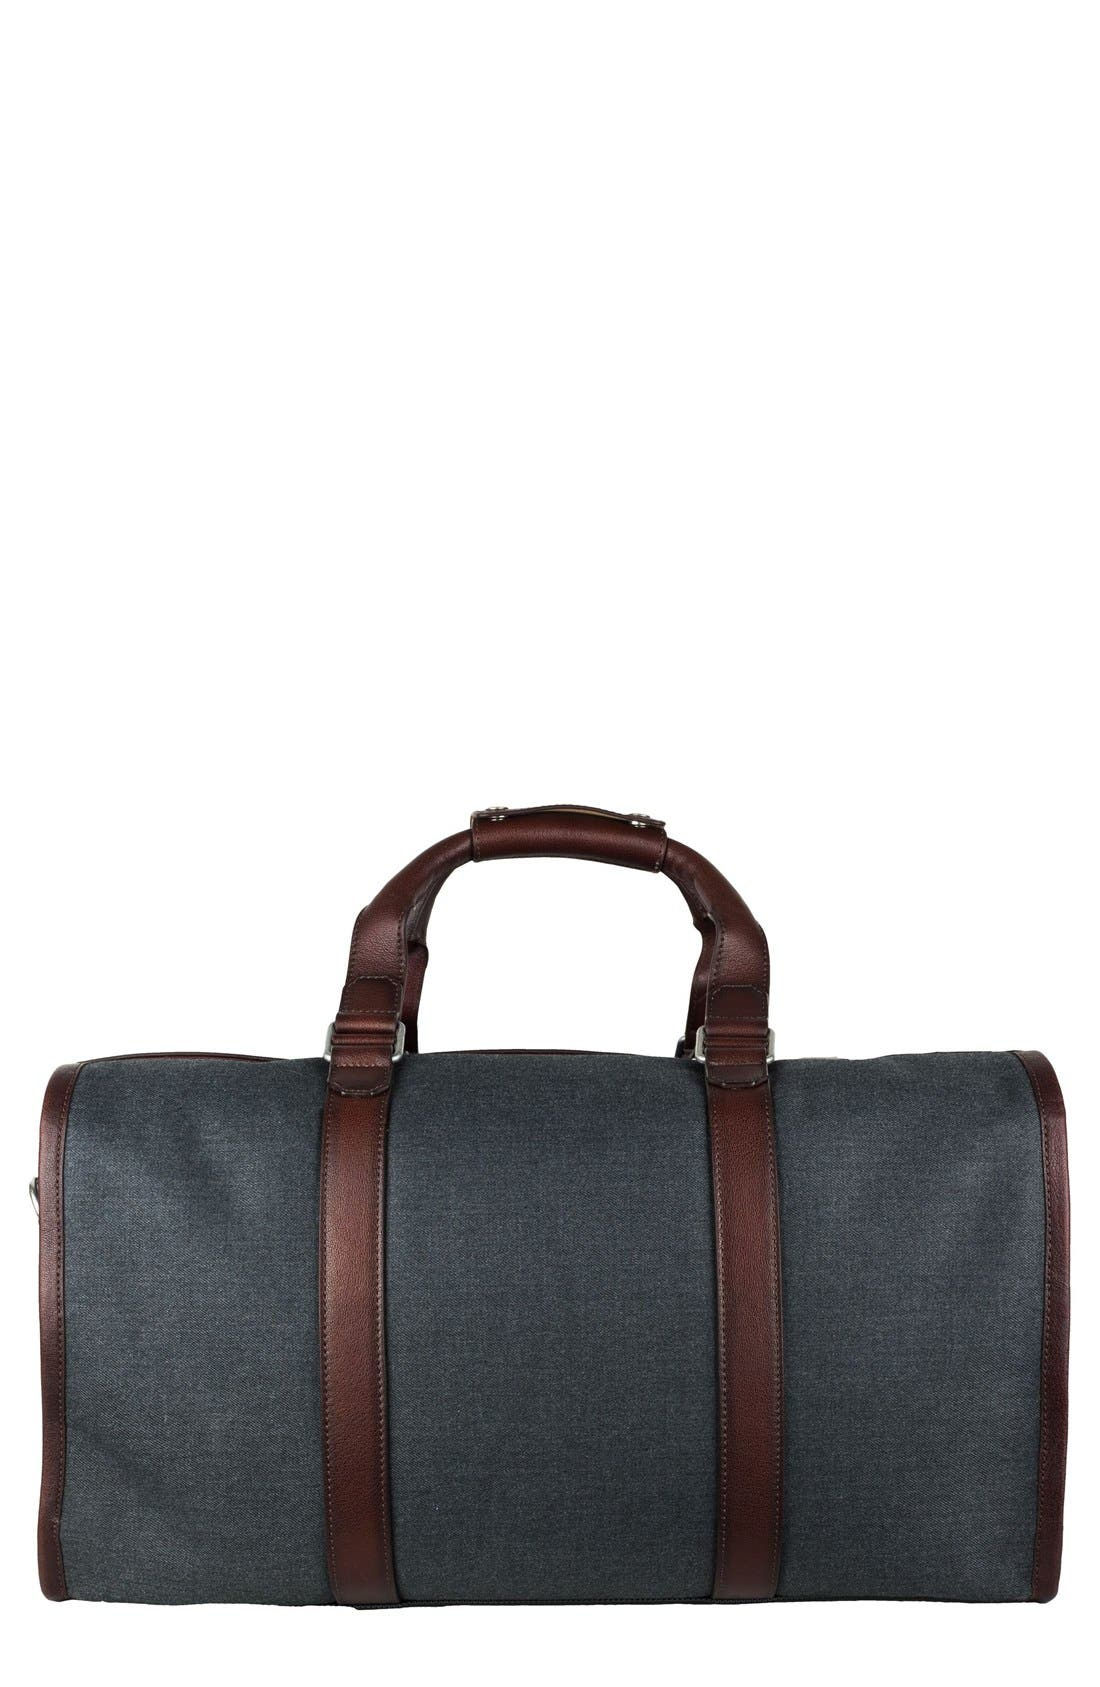 'Grafton' Duffel Bag,                         Main,                         color, 020